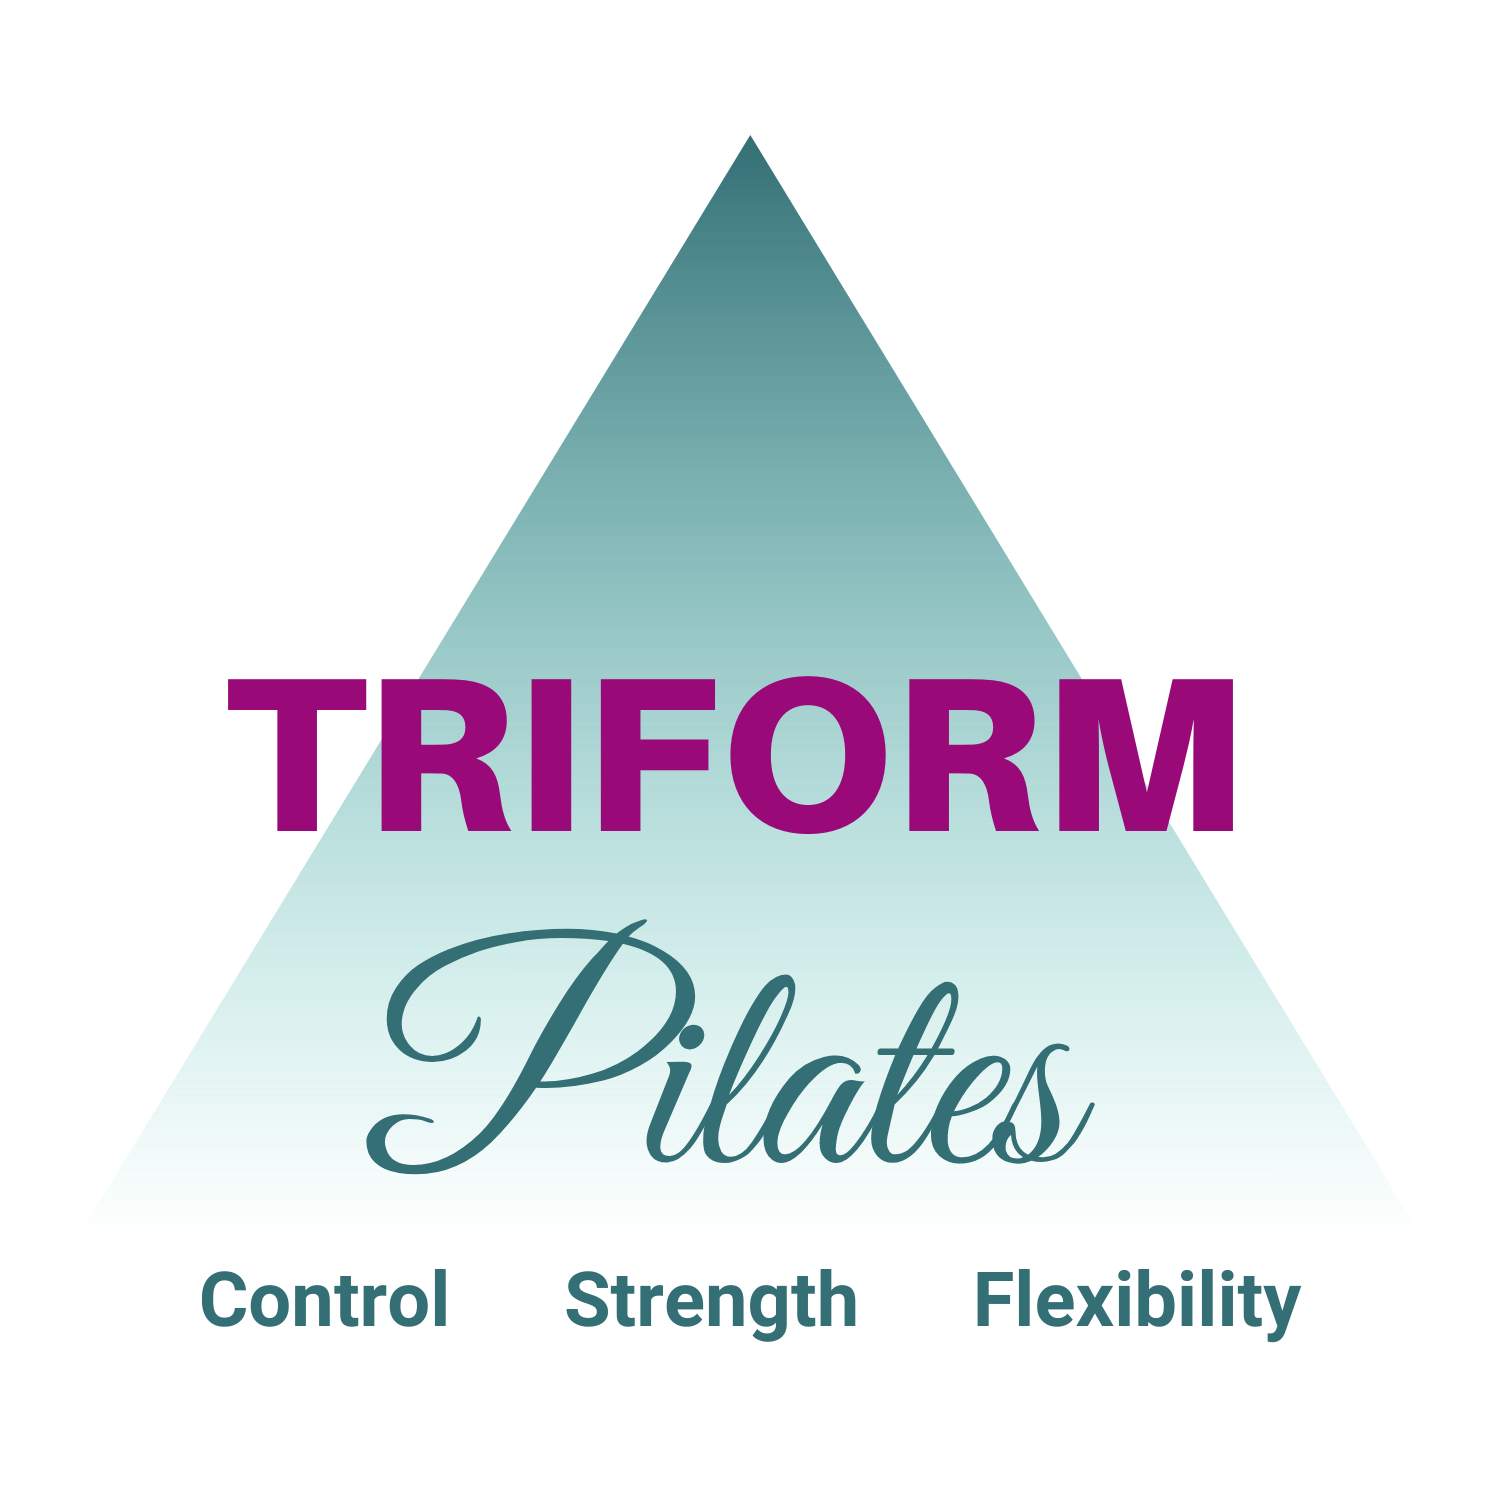 Triform Pilates